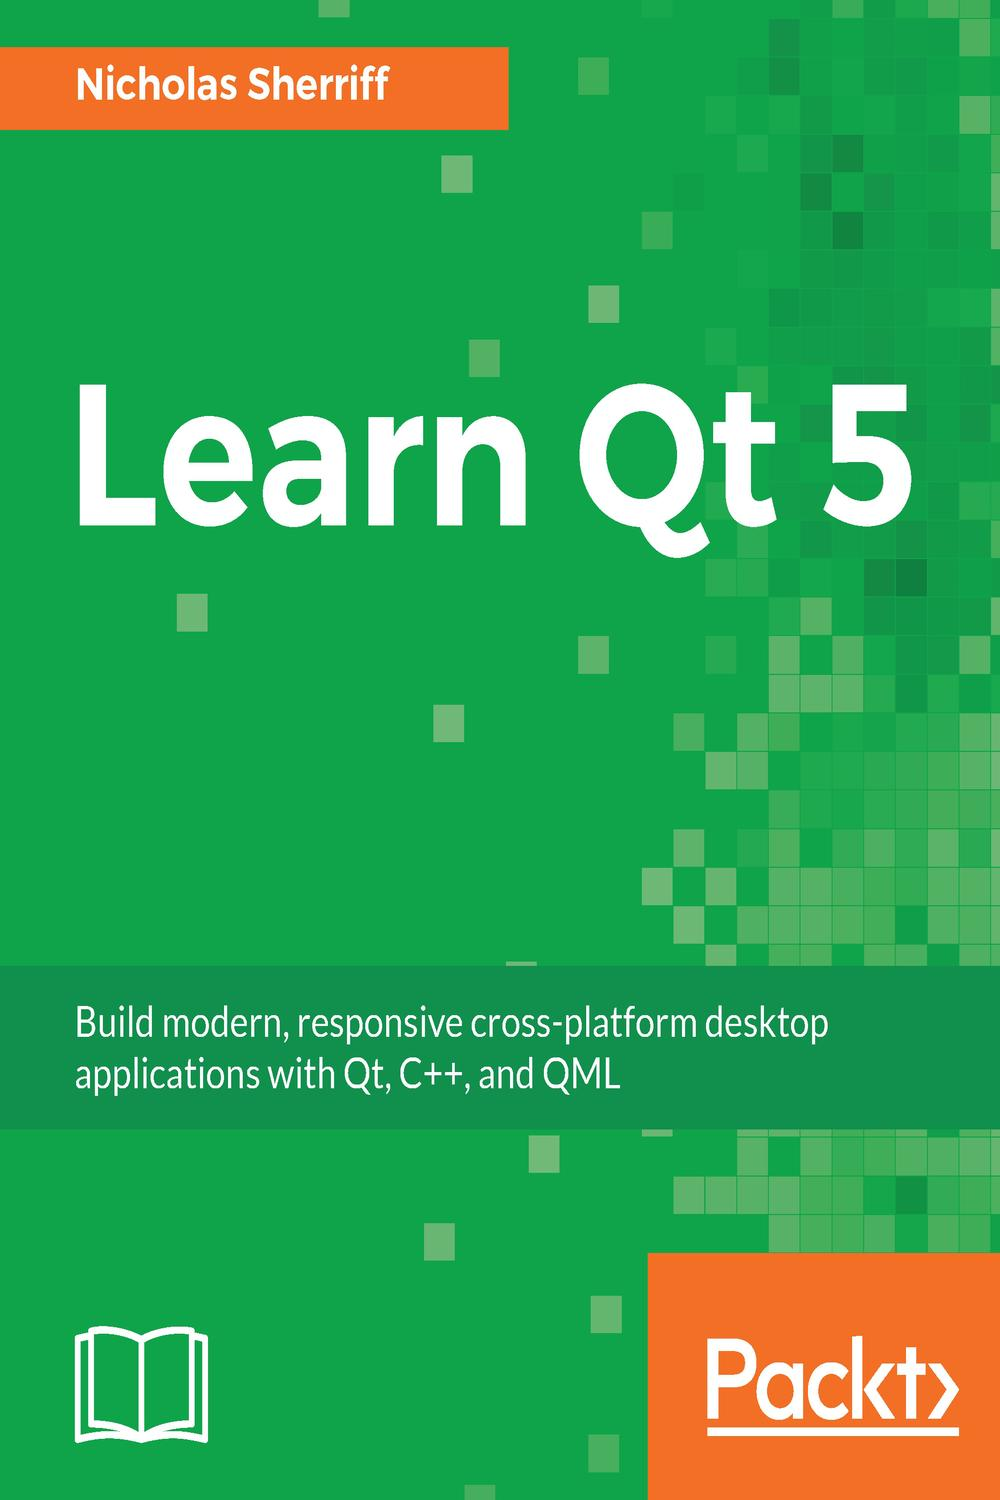 Learn Qt 5 by Nicholas Sherriff | Read online | PDF, eBook